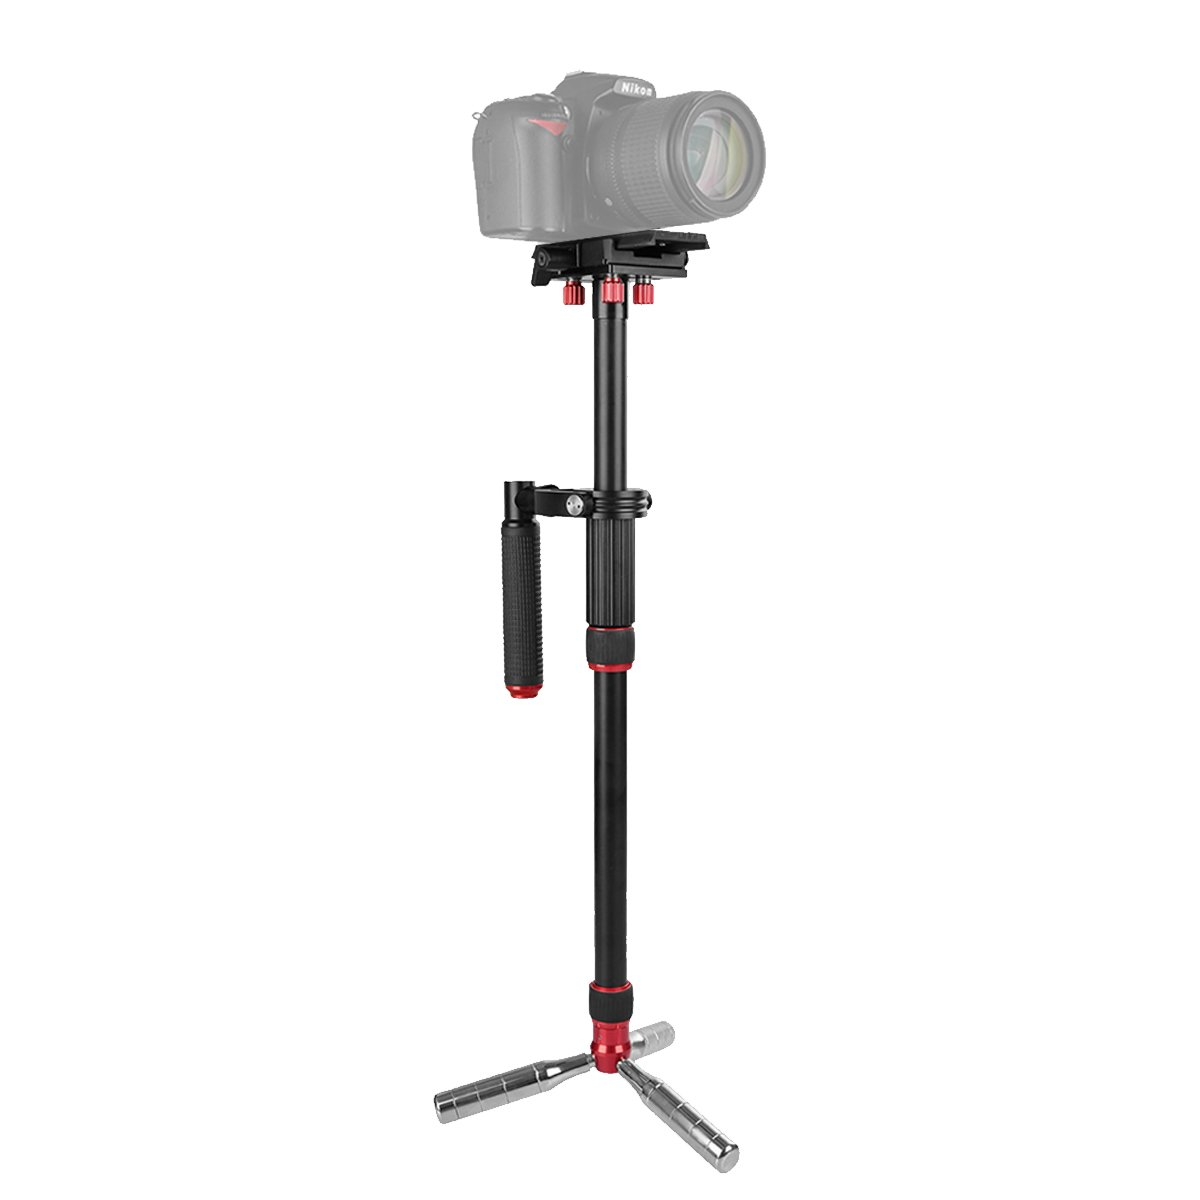 Up Load 6.6 lbs IFOOTAGE Aluminum Handheld Camera Stabilizer 20 inches Video Steadycam Stabilizer with 1//4 inch Screw Quick Release Plate Compatible for DSLR Cameras Camcorders